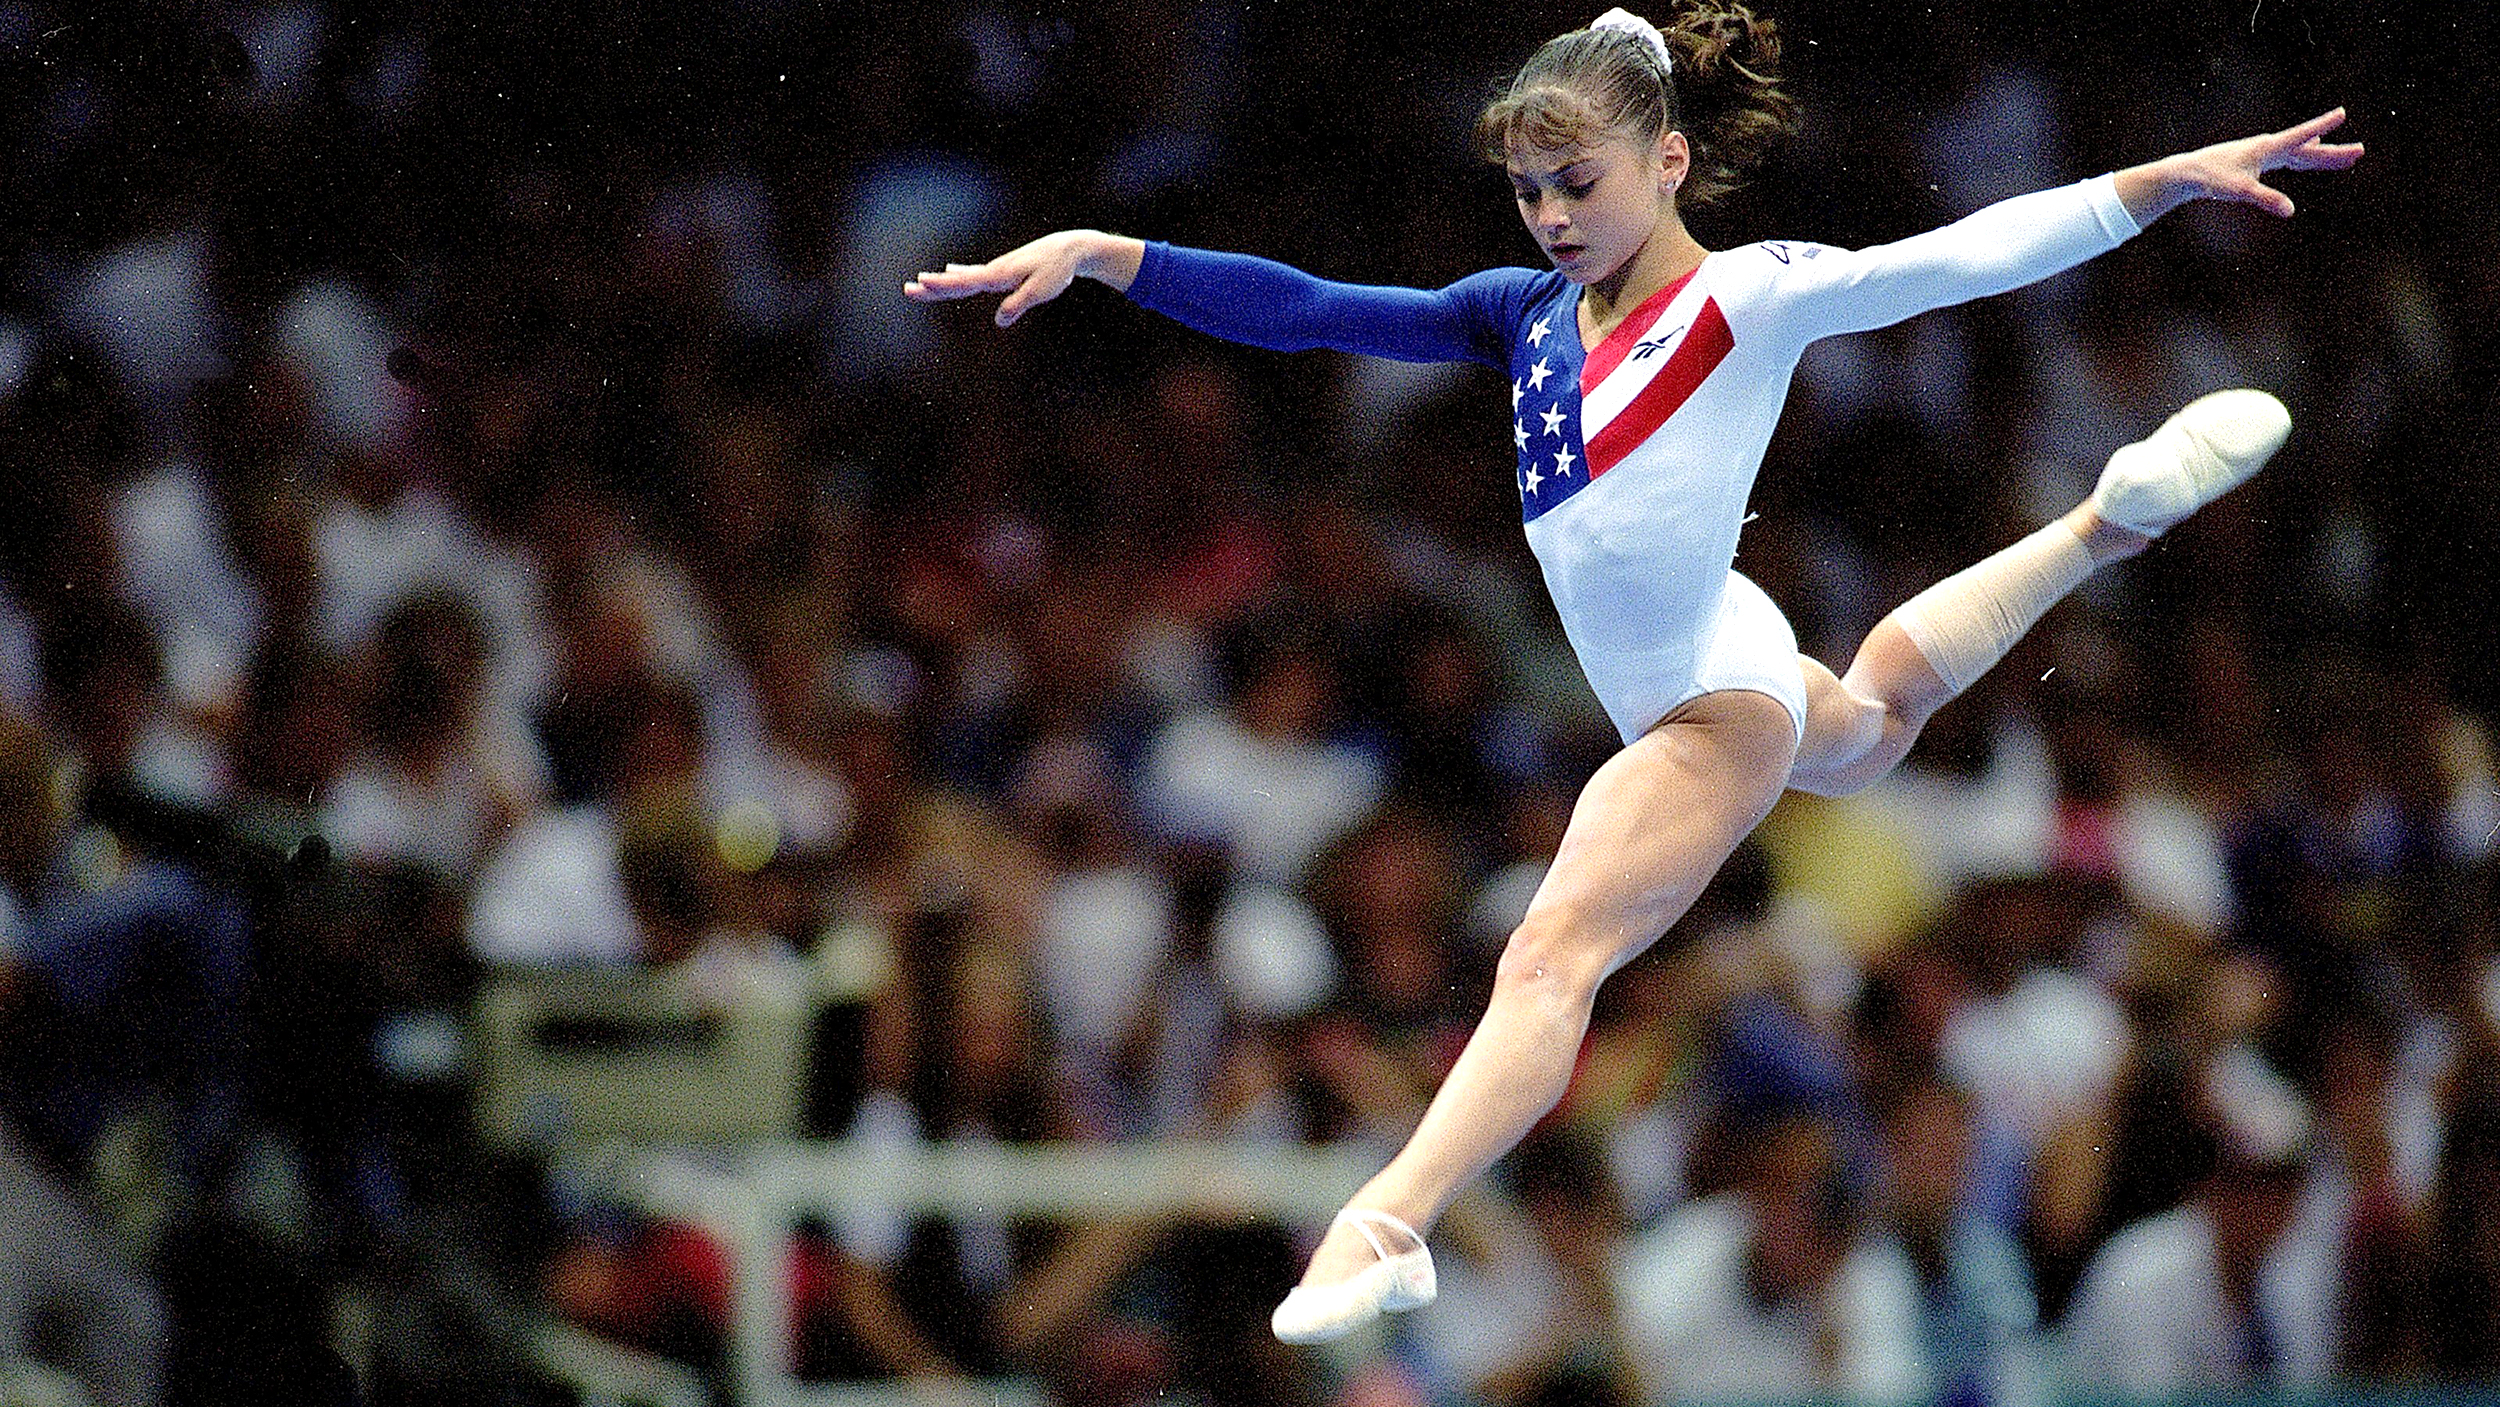 a look at five facts about dominique moceanu Dominique moceanu reflects on the 20th anniversary of the 1996 summer olympics and her magnificent 7 teammates, who won the first olympic gold medal in us women's gymnastics history.